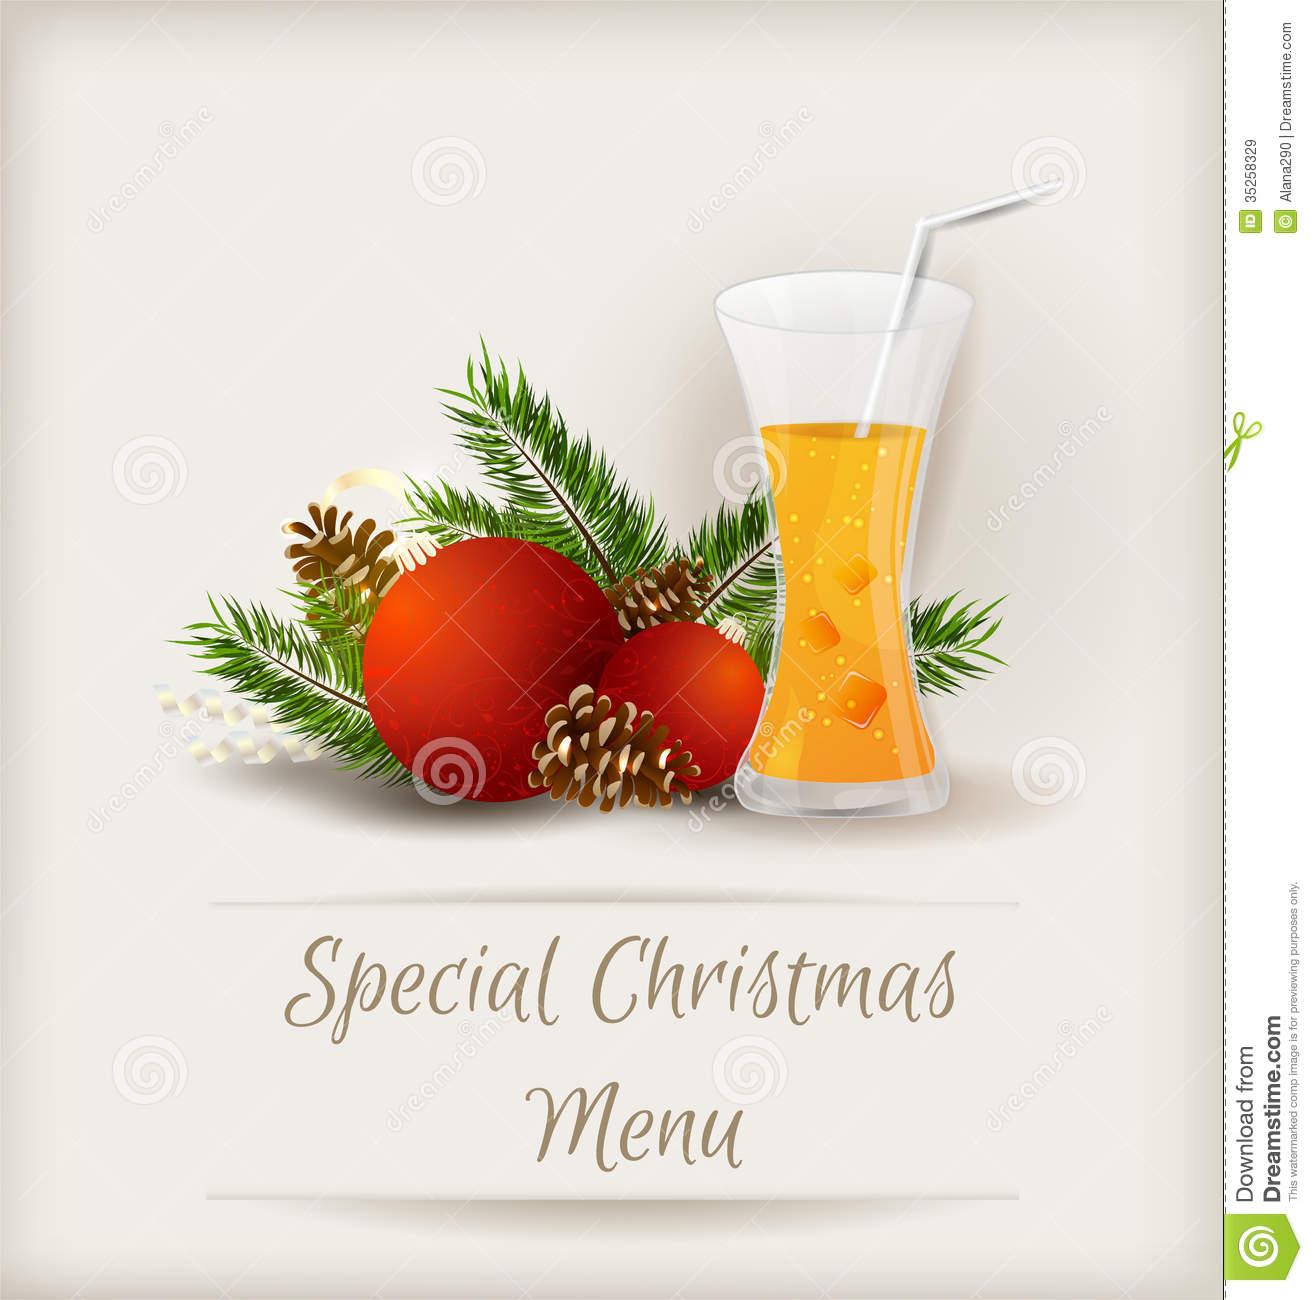 special christmas menu template royalty stock images image special christmas menu template